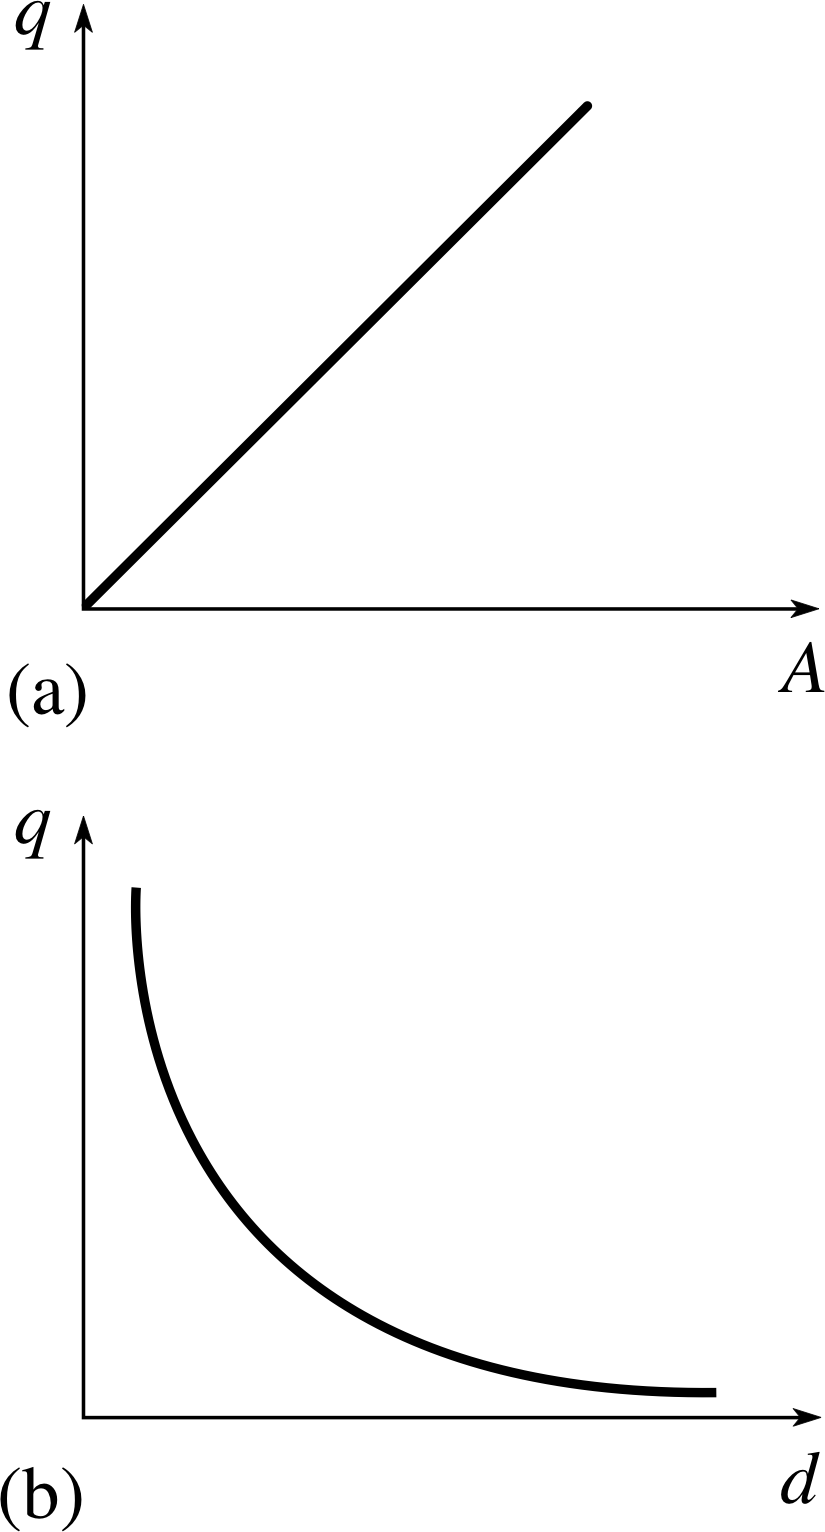 Pplato Flap Phys 45 Energy In Electric And Magnetic Fields Circuit Diagram Shows Three Light Bulbs Arranged Parallel With Figure 3 Graphs Showing